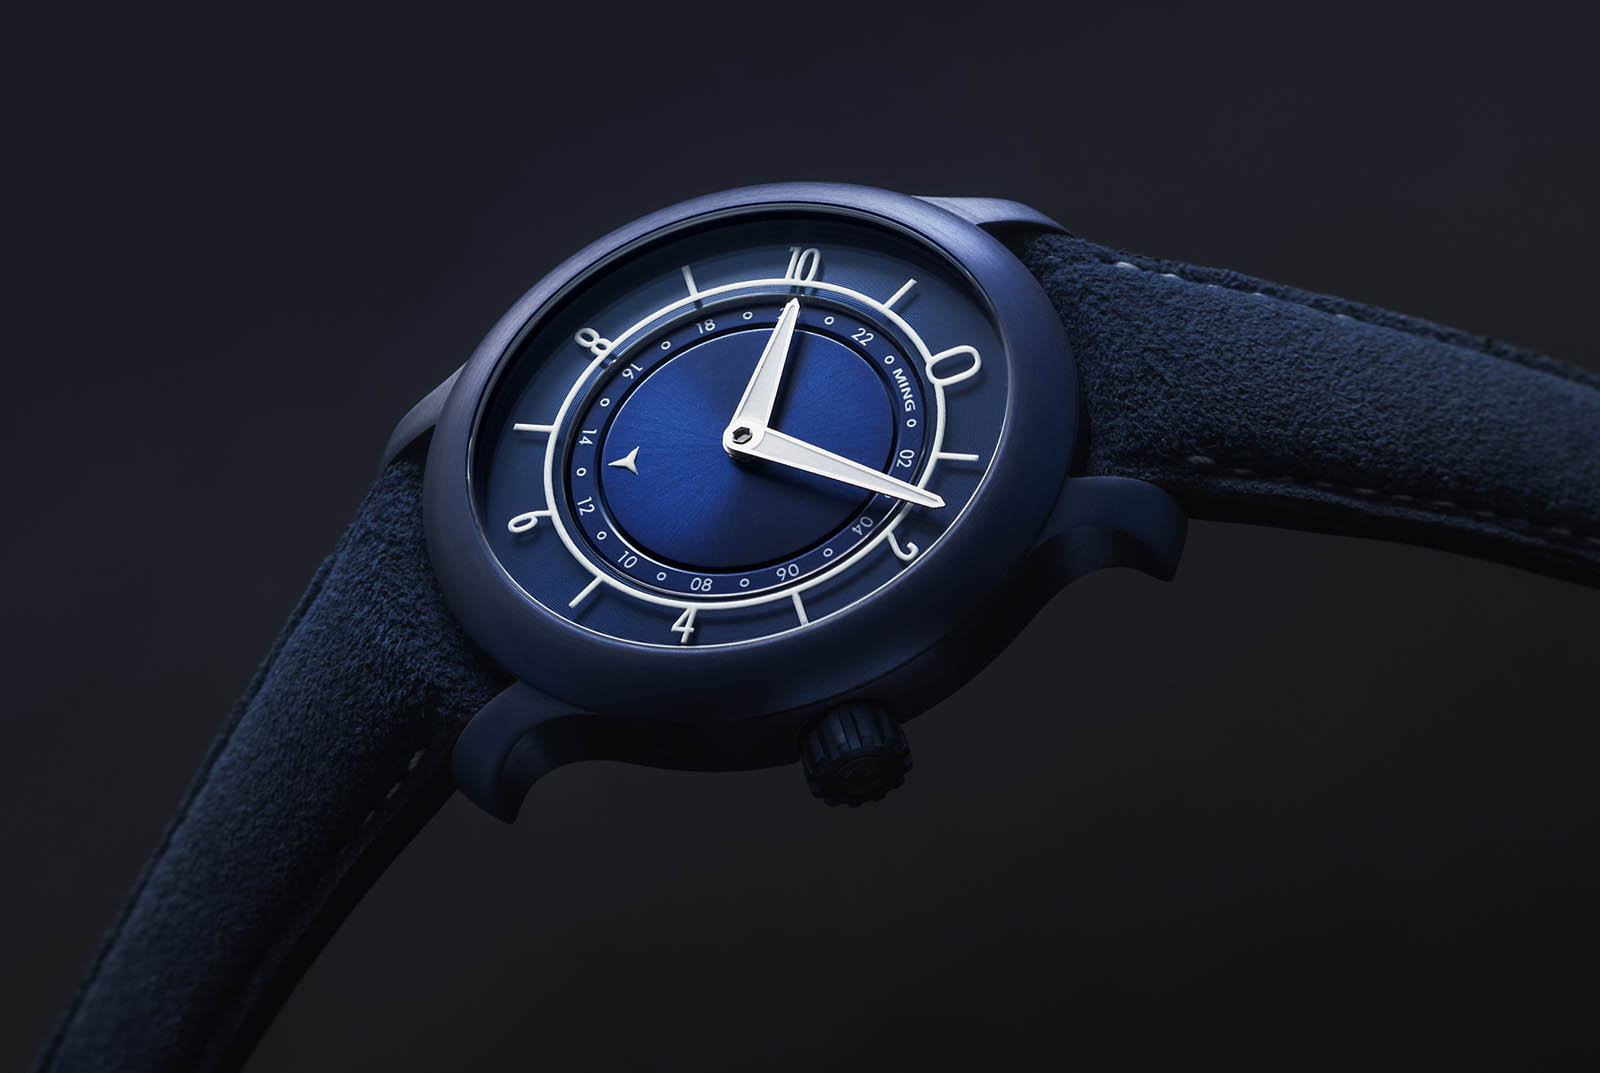 Ming 17.03 GMT Ultra Blue Limited Edition